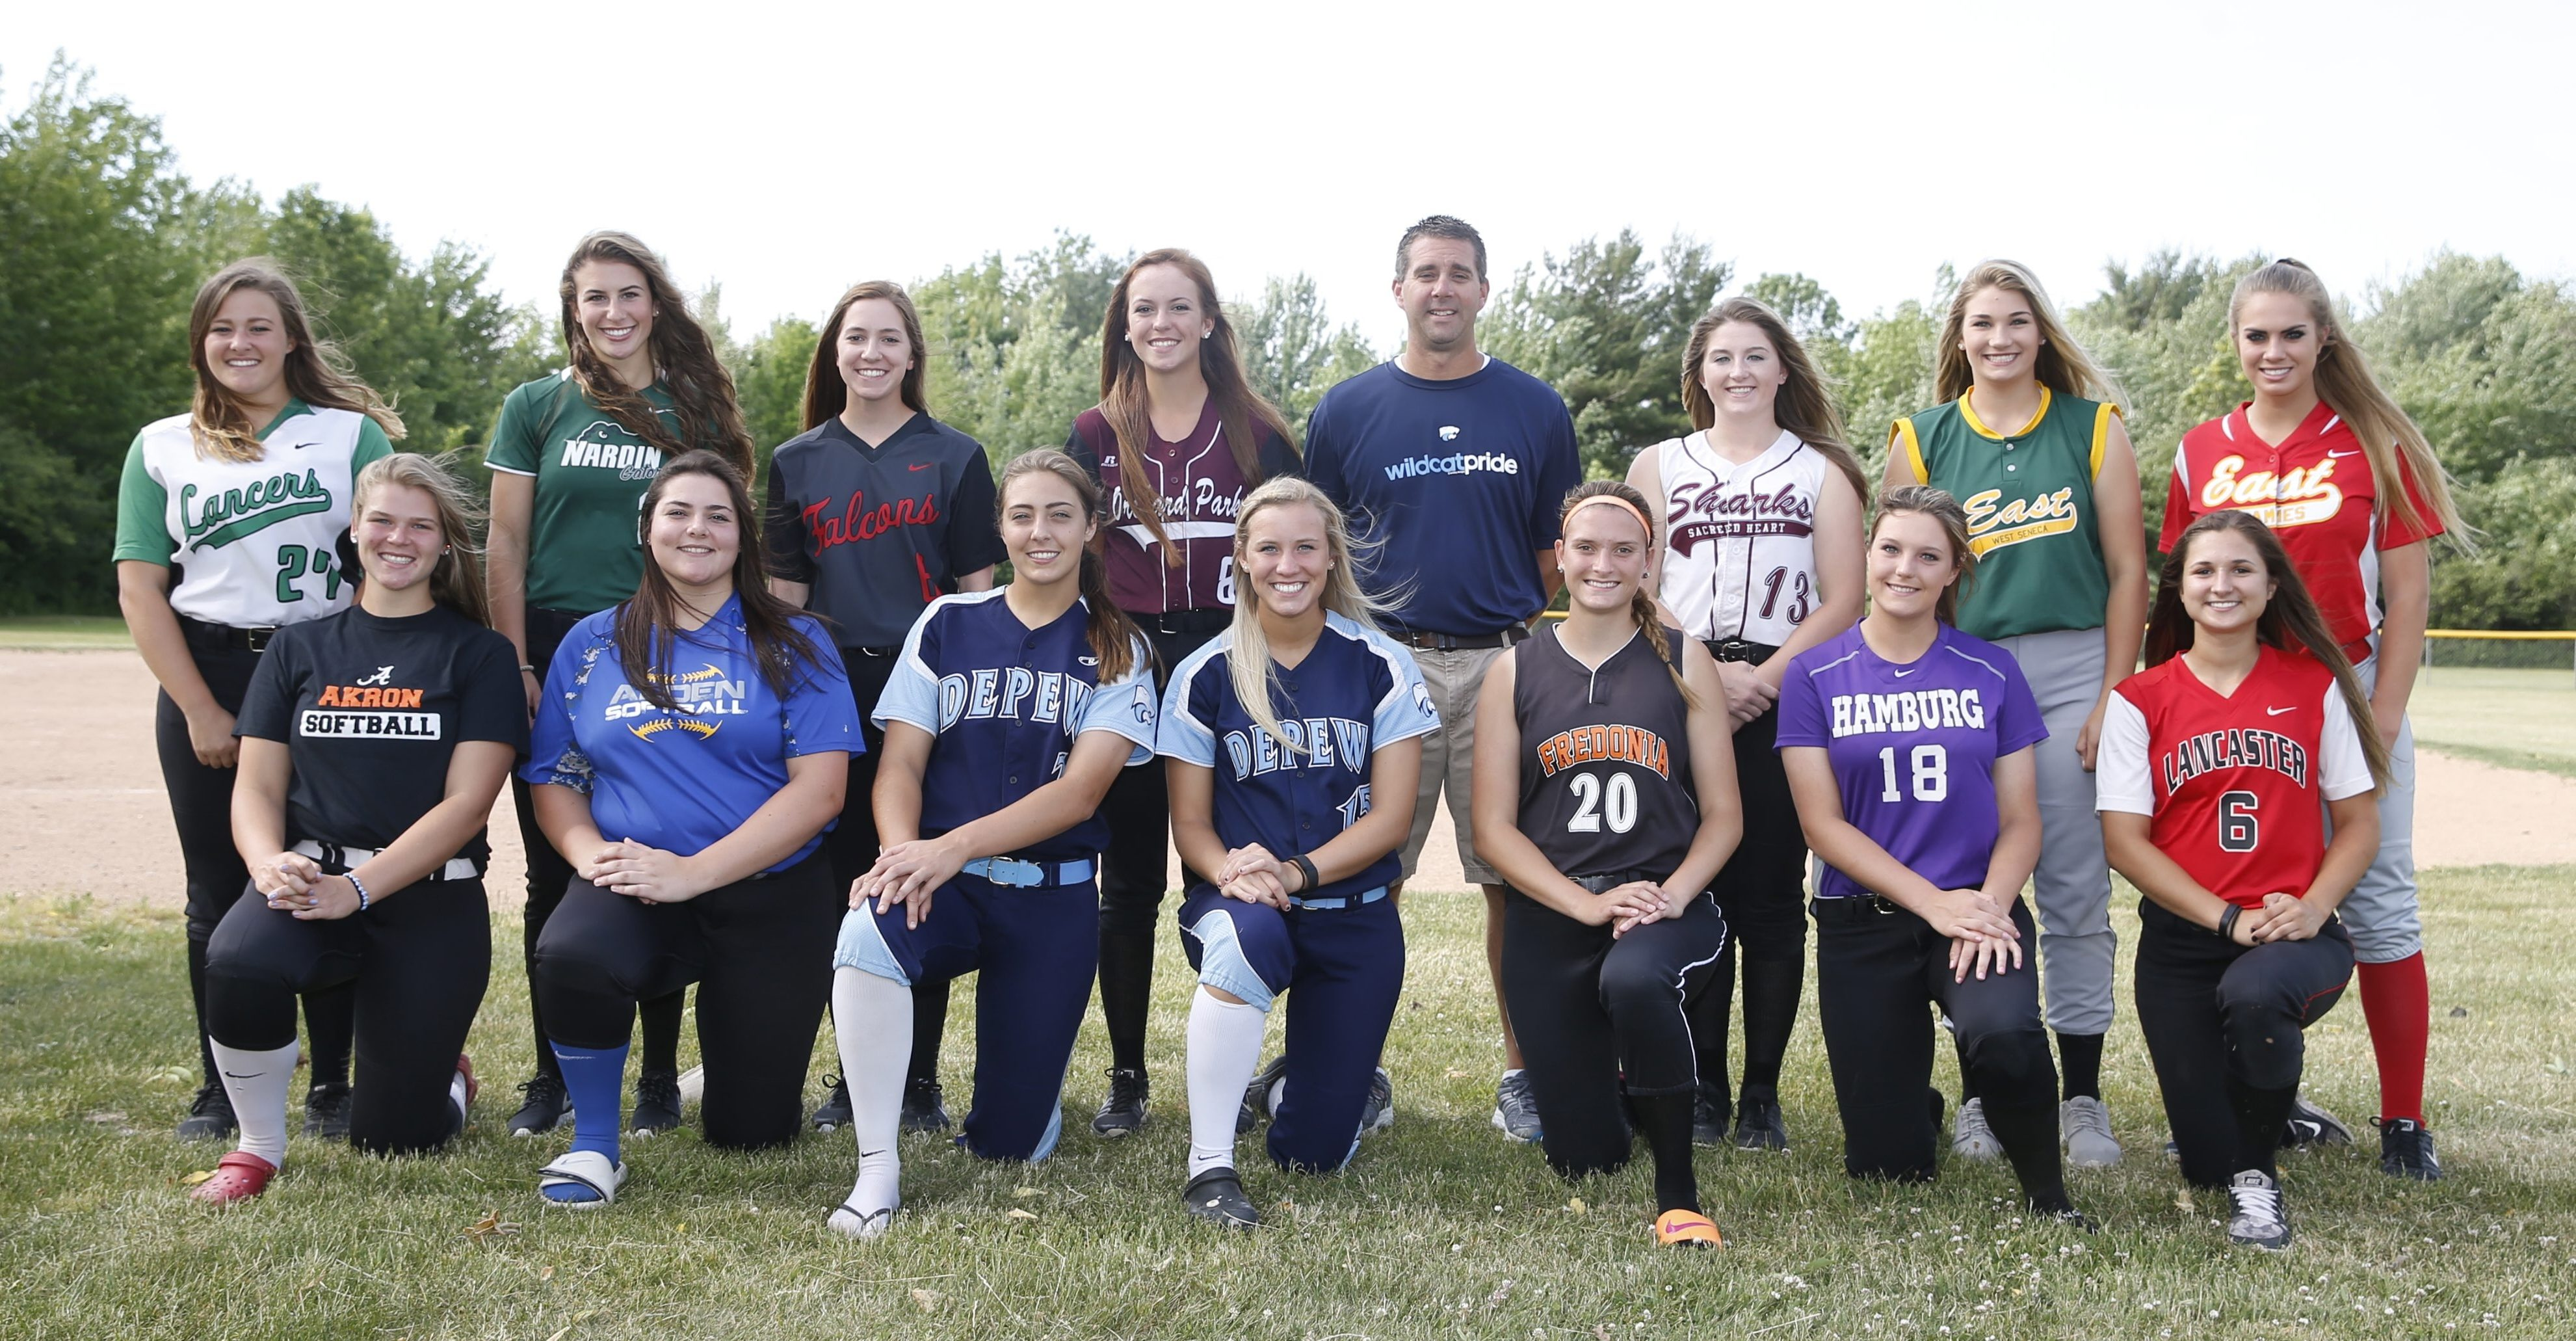 The 2016 All-Western New York Softball Team: Front row (left to right) -- Abby Stone, Akron; Laura Kratzke, Alden; Karsen Cotton, Depew; Abby Nicometi, Depew; Hannah Cybart, Fredonia; Heather Haberman, Hamburg; Kara Paradowski, Lancaster. Back row (L-R) -- Jenna Rhue, Lew-Port; Rachael Perelstein, Nardin; Madison Klidonas, Niagara Wheatfield; Madison Stewart, Orchard Park; Dan Seelig, Depew, Coach of the Year; Shannon Gilbert, Sacred Heart; Anilese Kelly, West Seneca East; Christy Mack, Williamsville East.